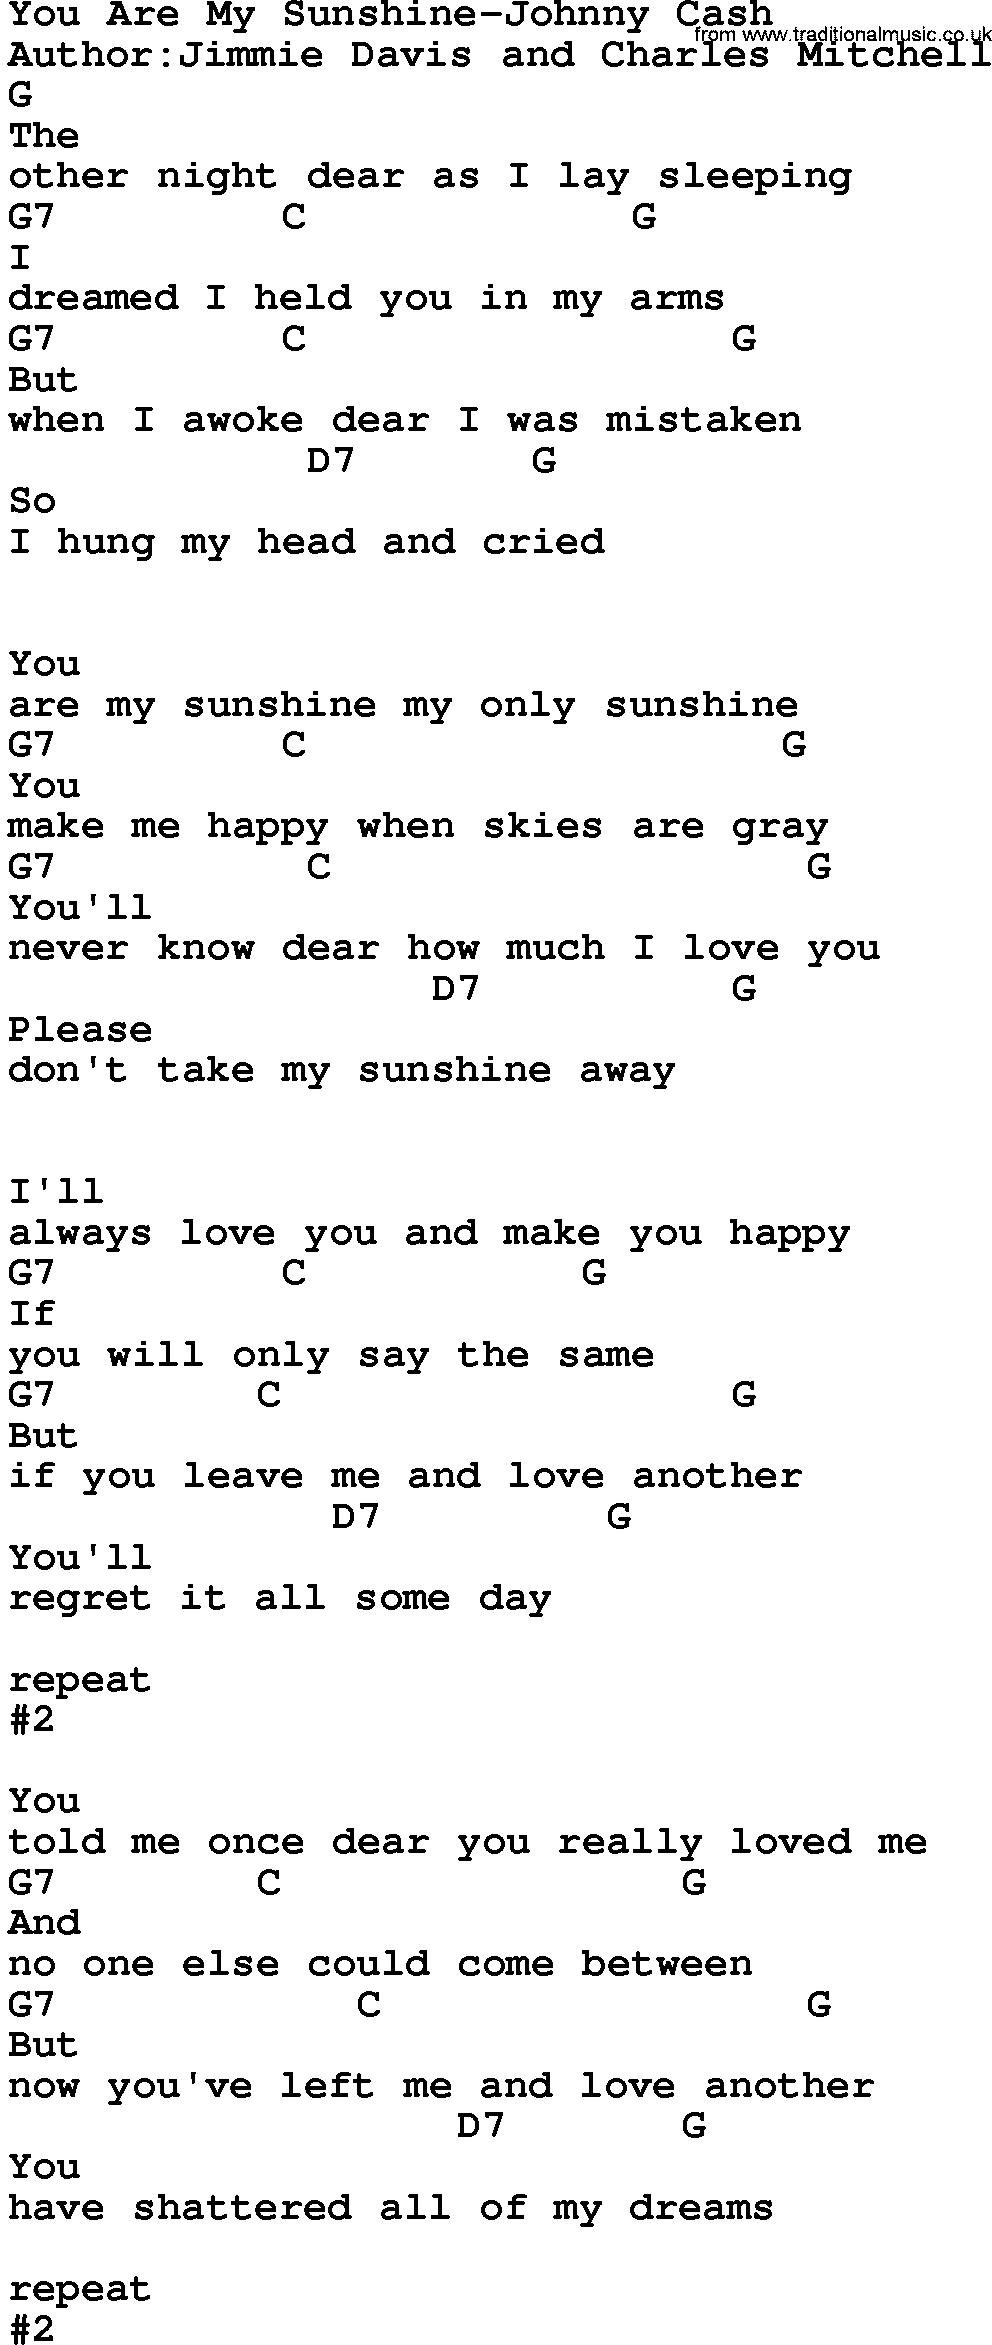 You Are My Sunshine Chords Country Musicyou Are My Sunshine Johnny Cash Lyrics And Chords